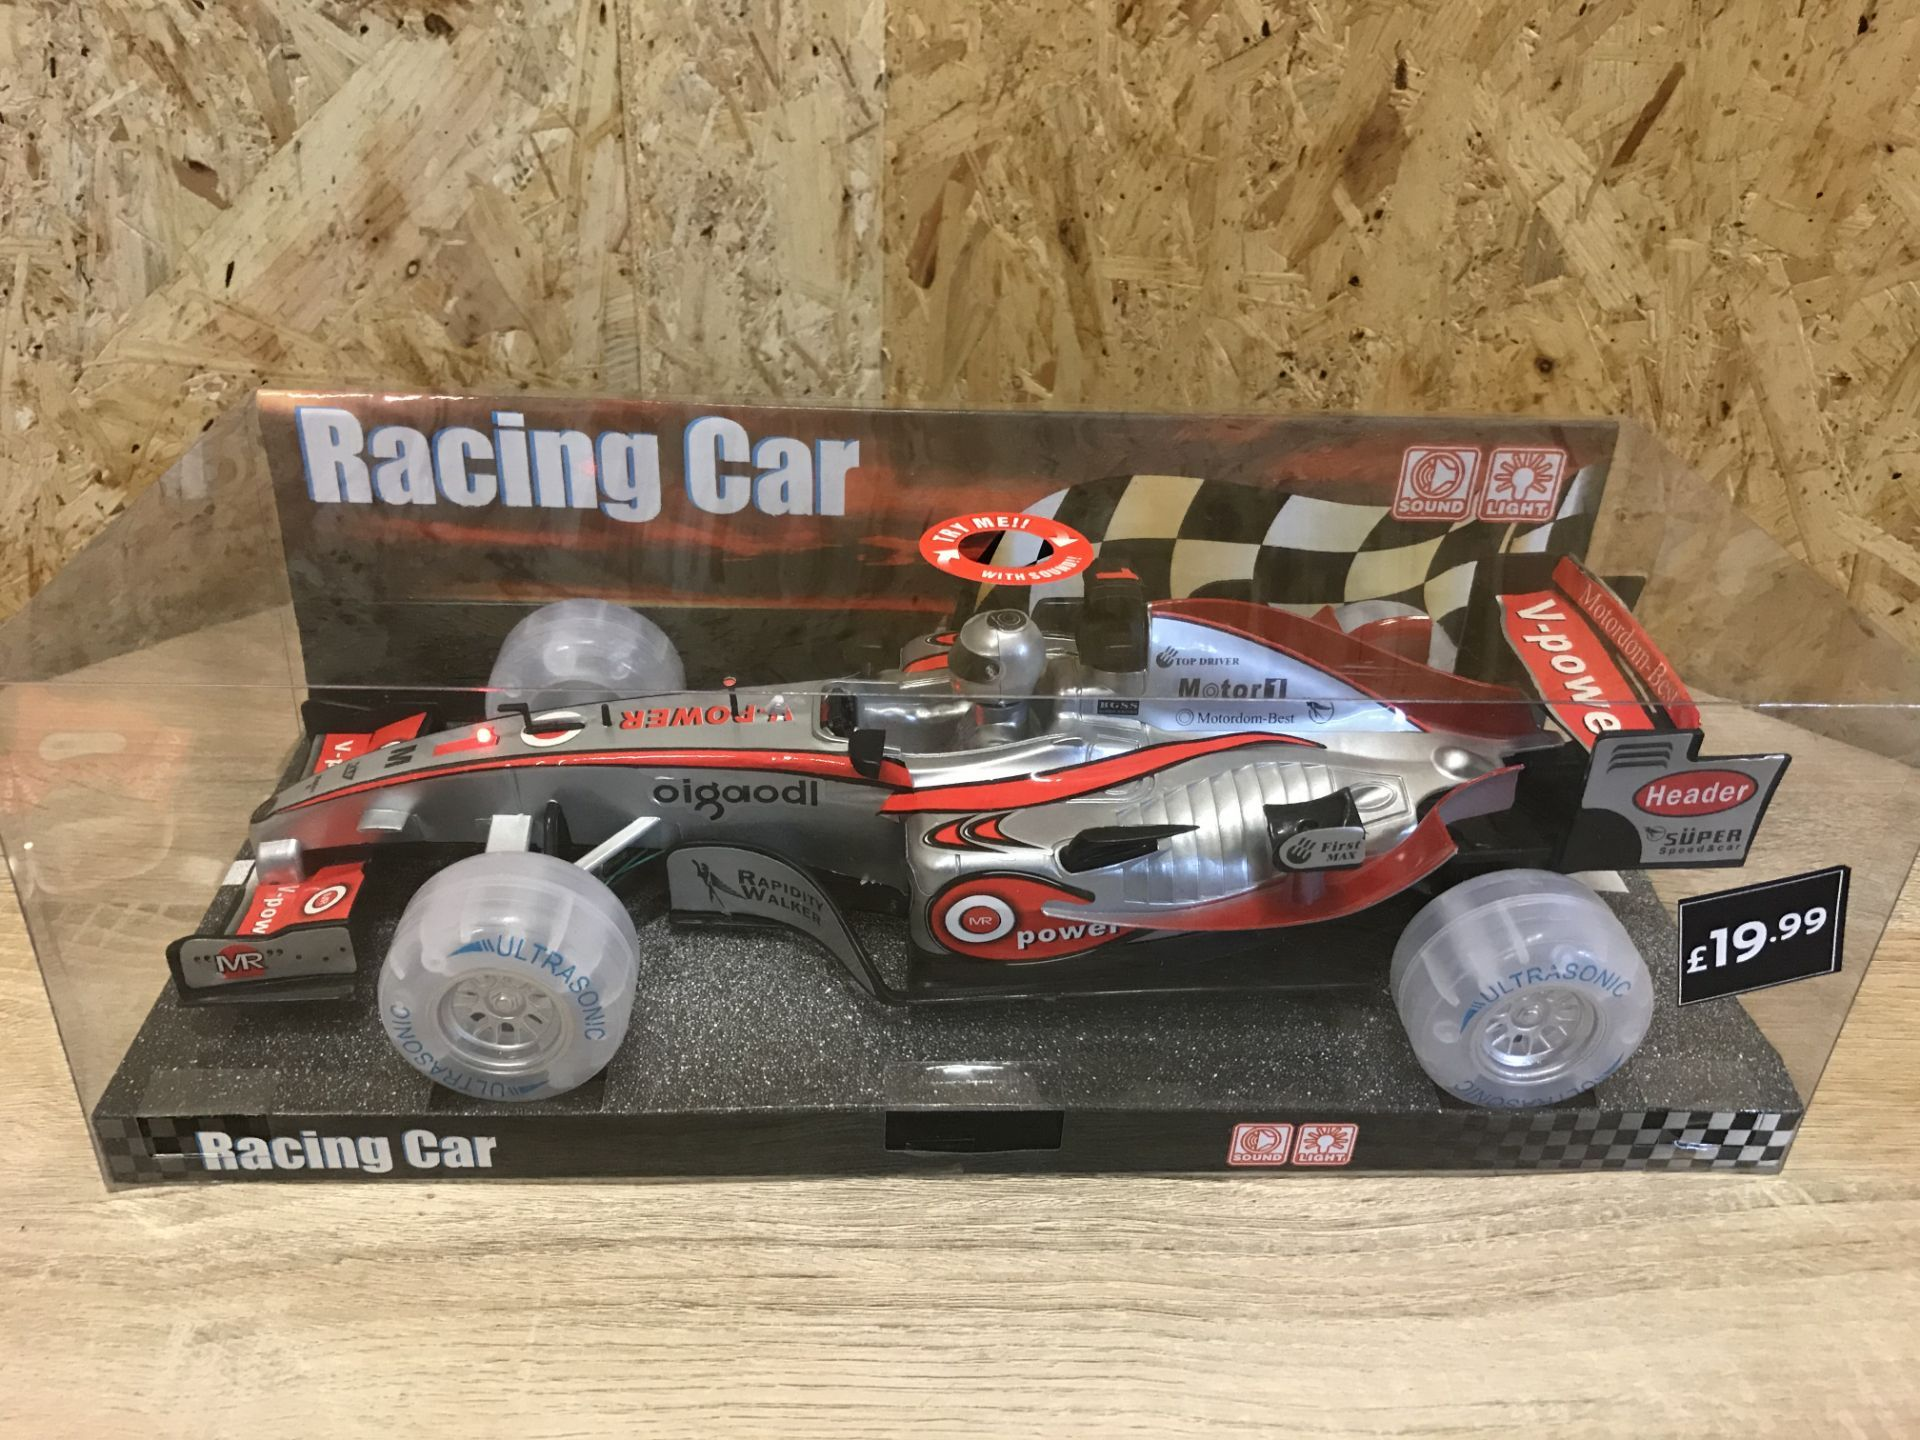 6 x Brand New Ultrasonic Sound And Light Up Racing Cars Rrp £19.99